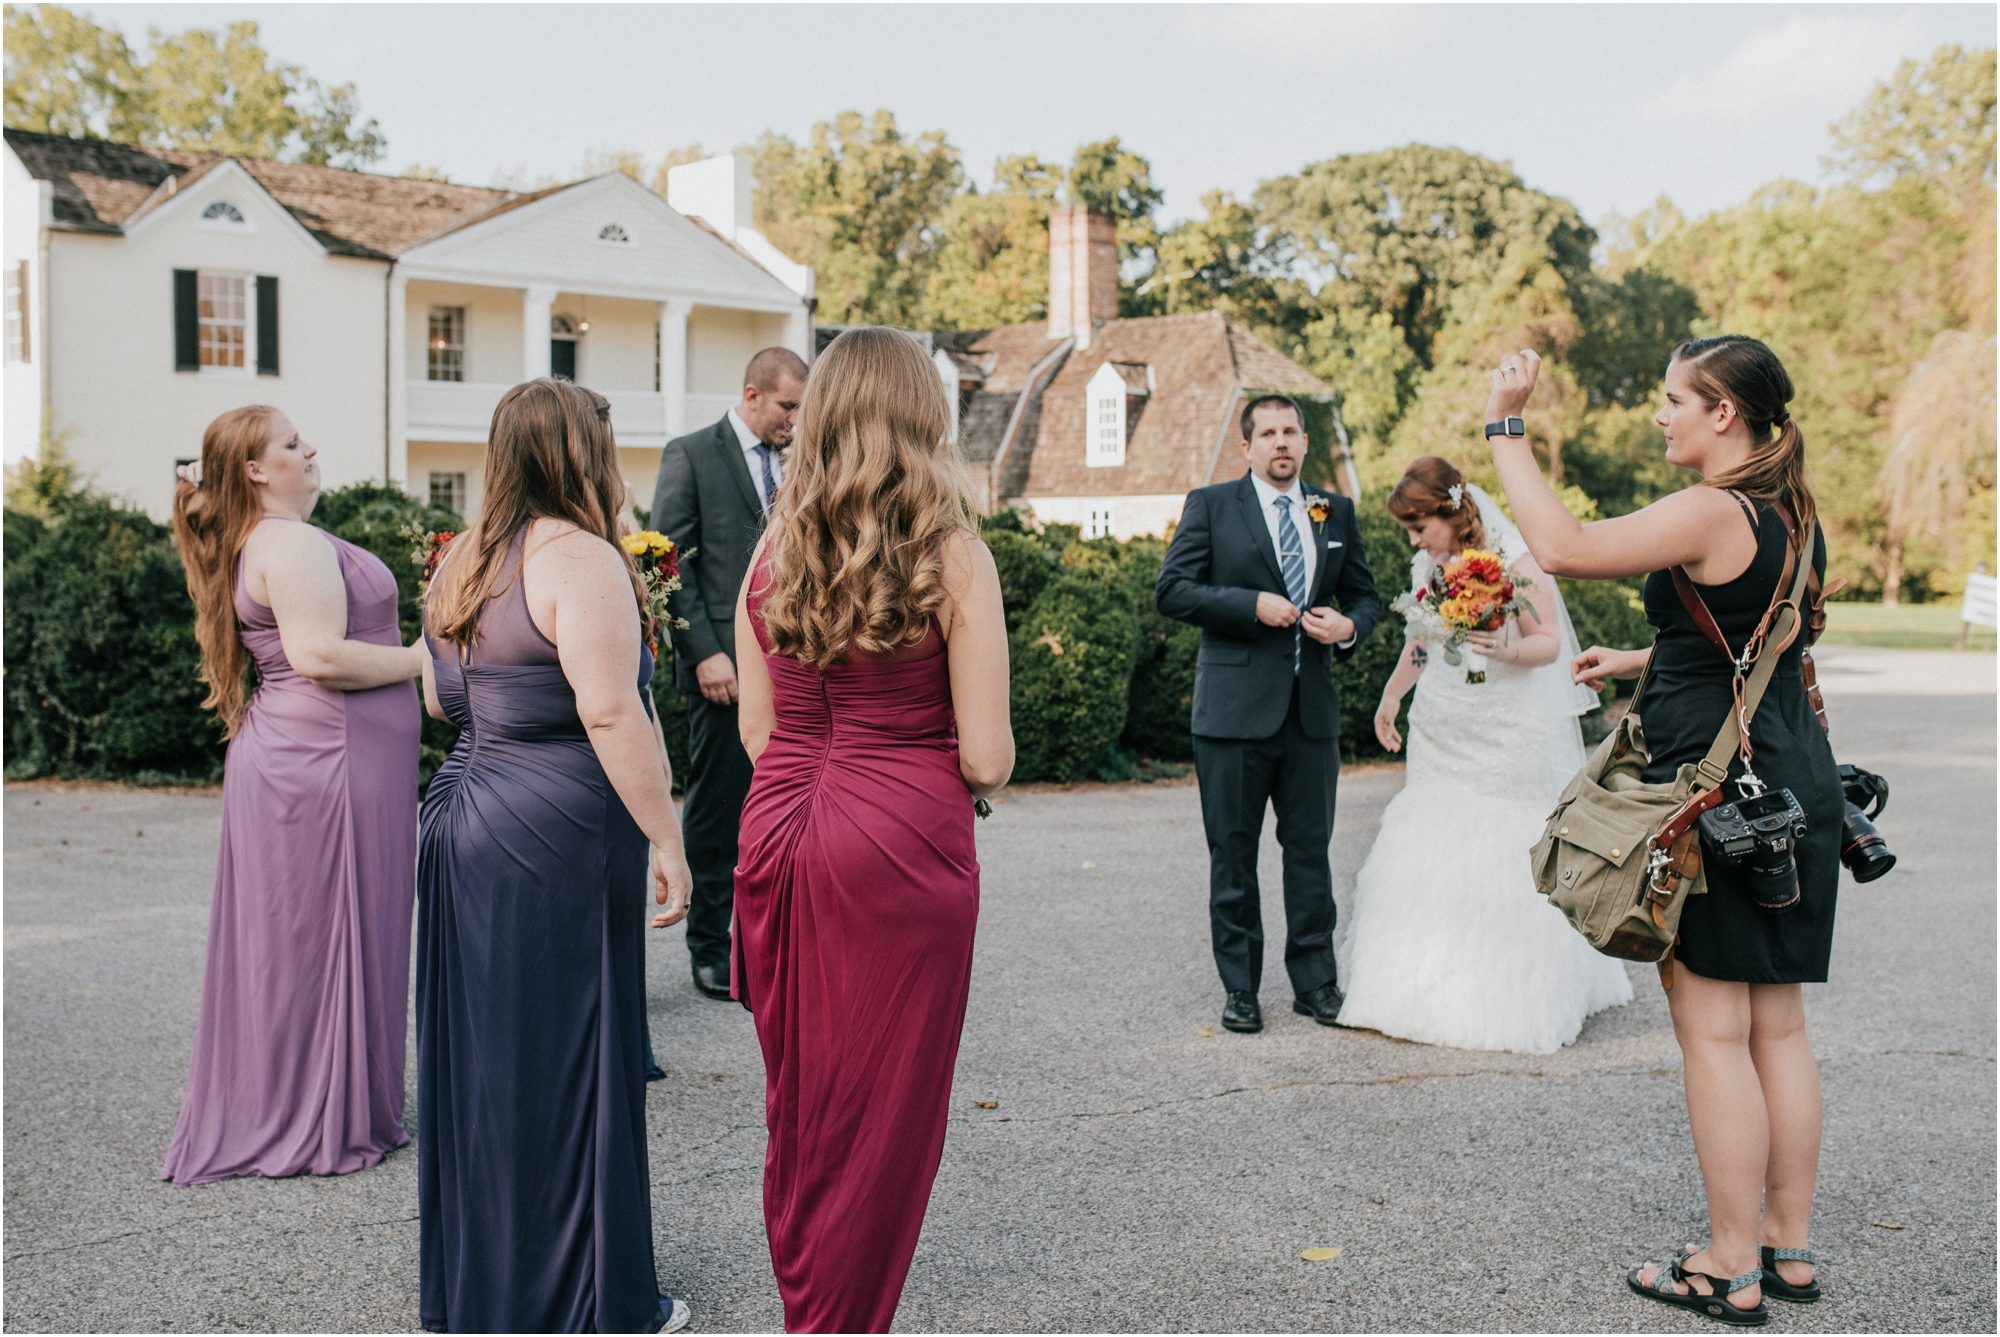 Photographed Bethany's wedding! More bridal party bossing!